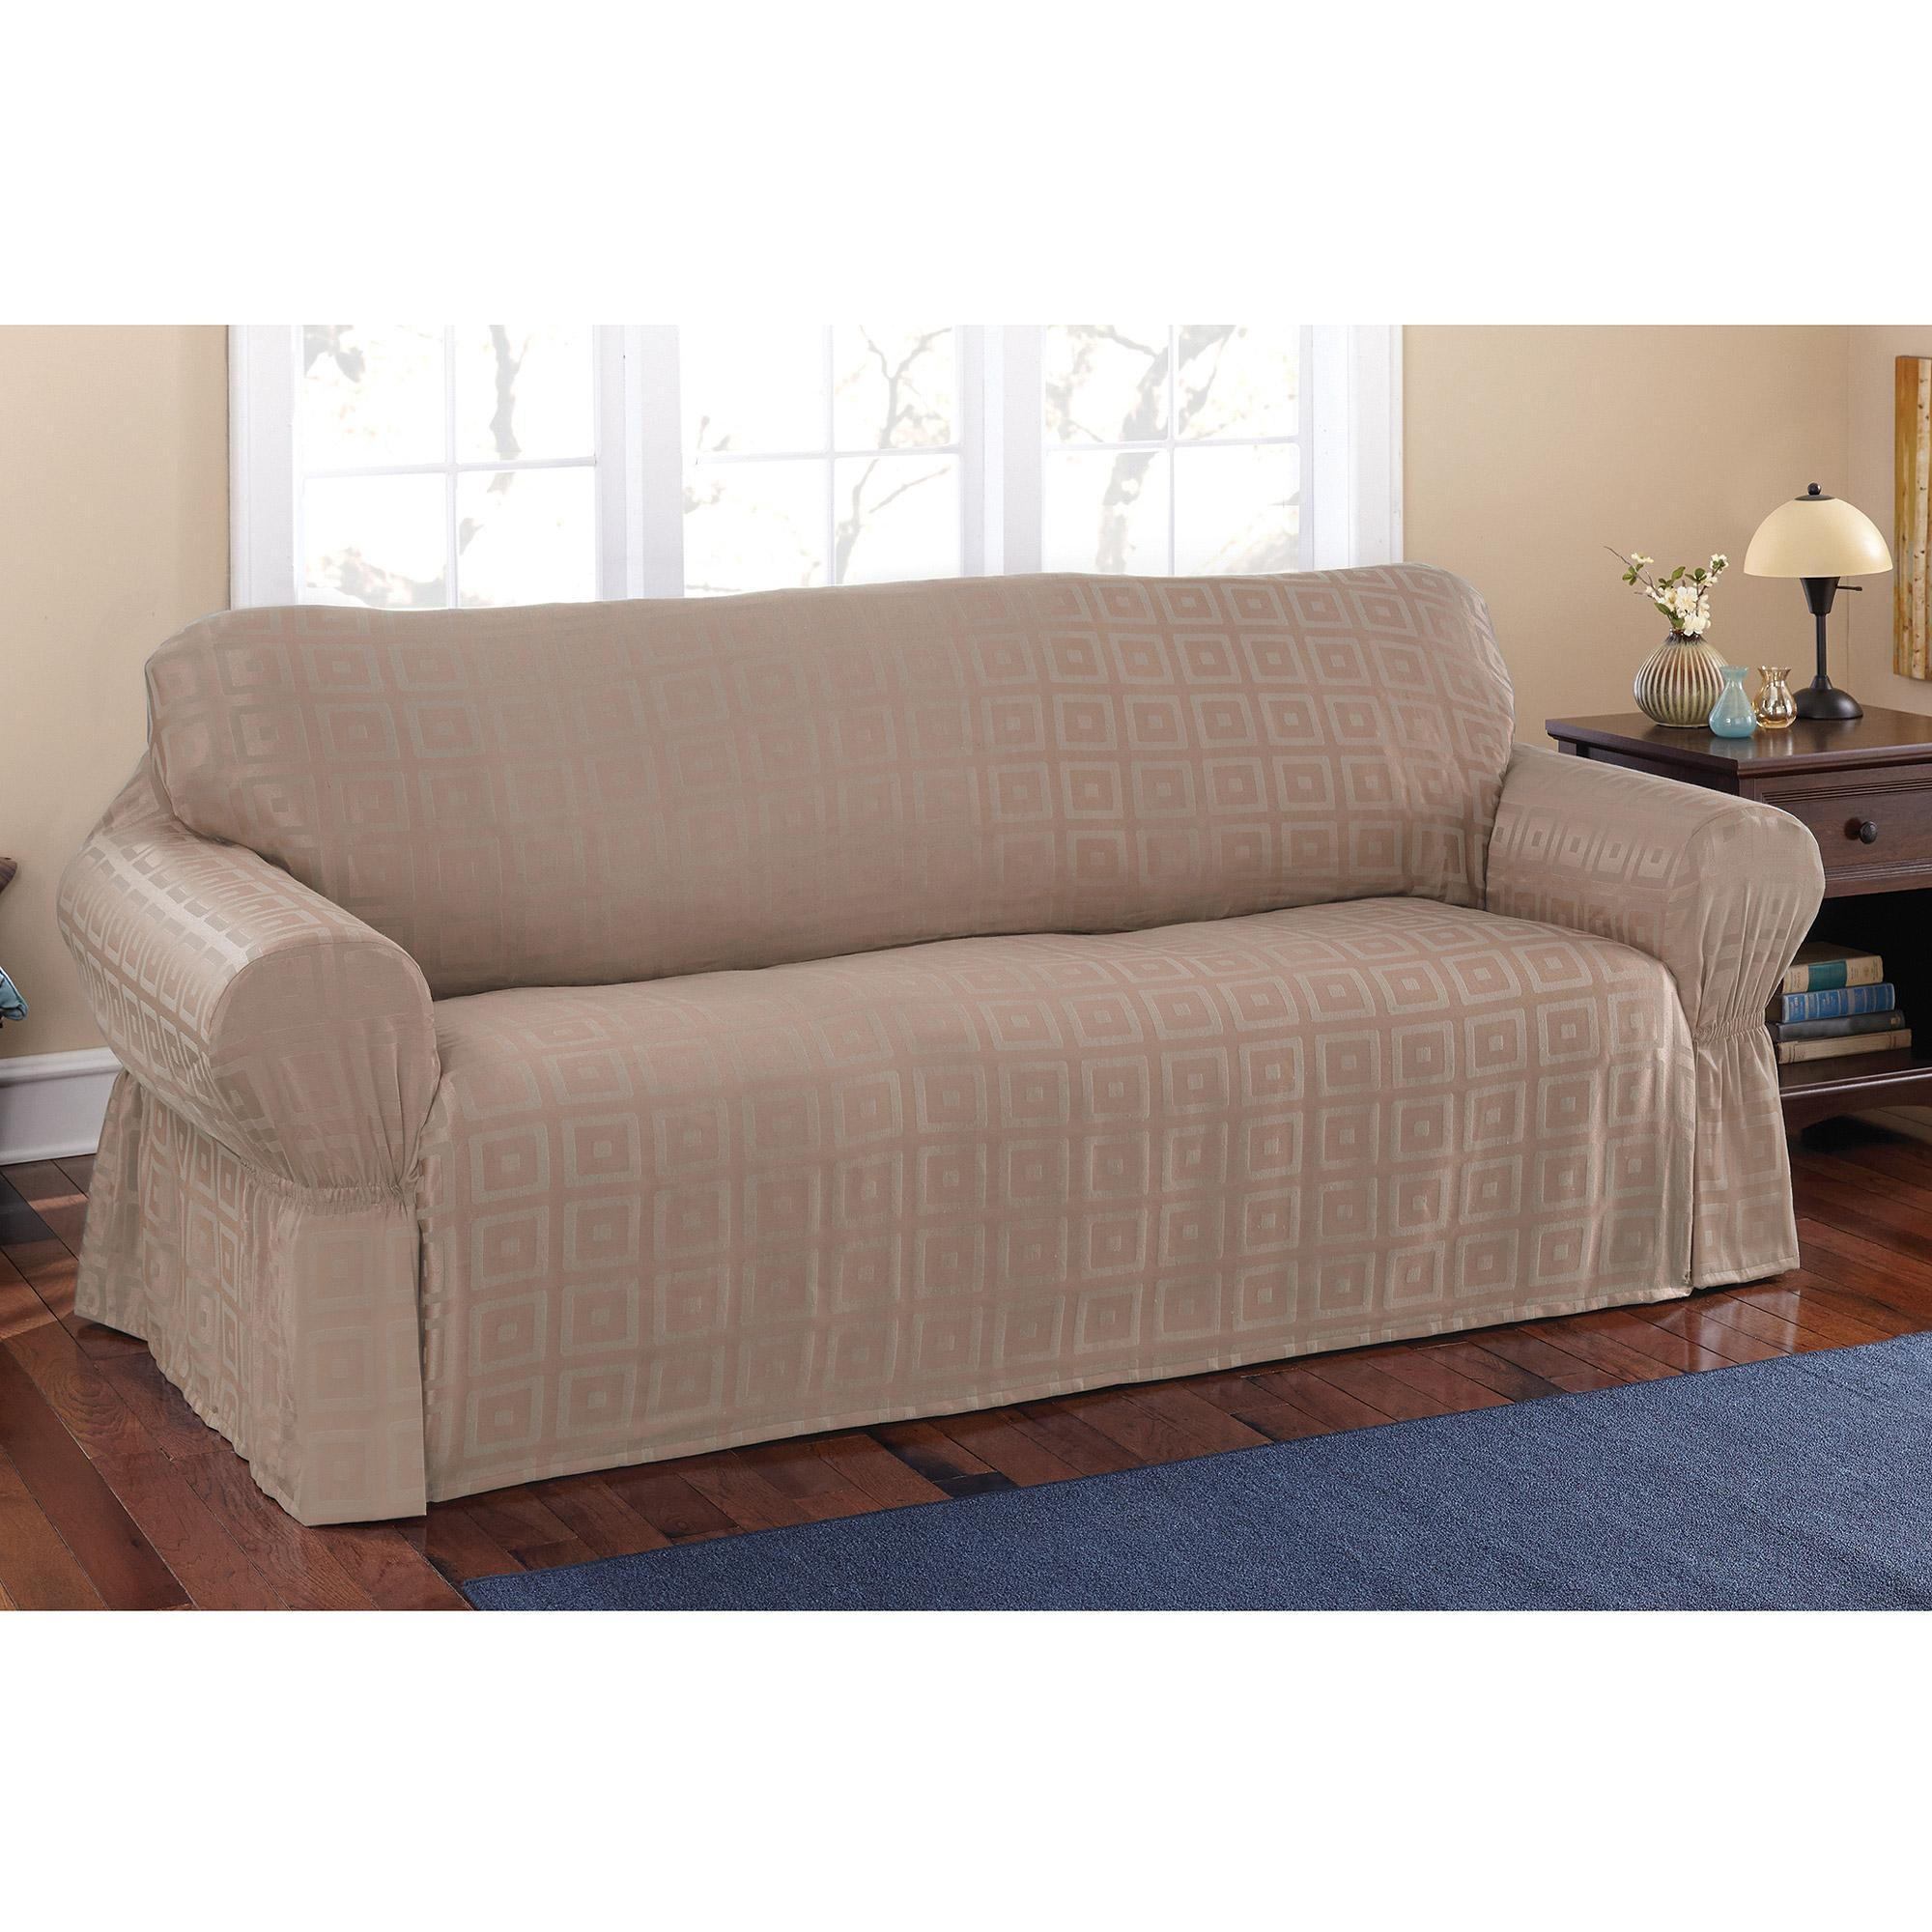 Couch Slipcovers Within Slipcovers For 3 Cushion Sofas (Image 1 of 20)